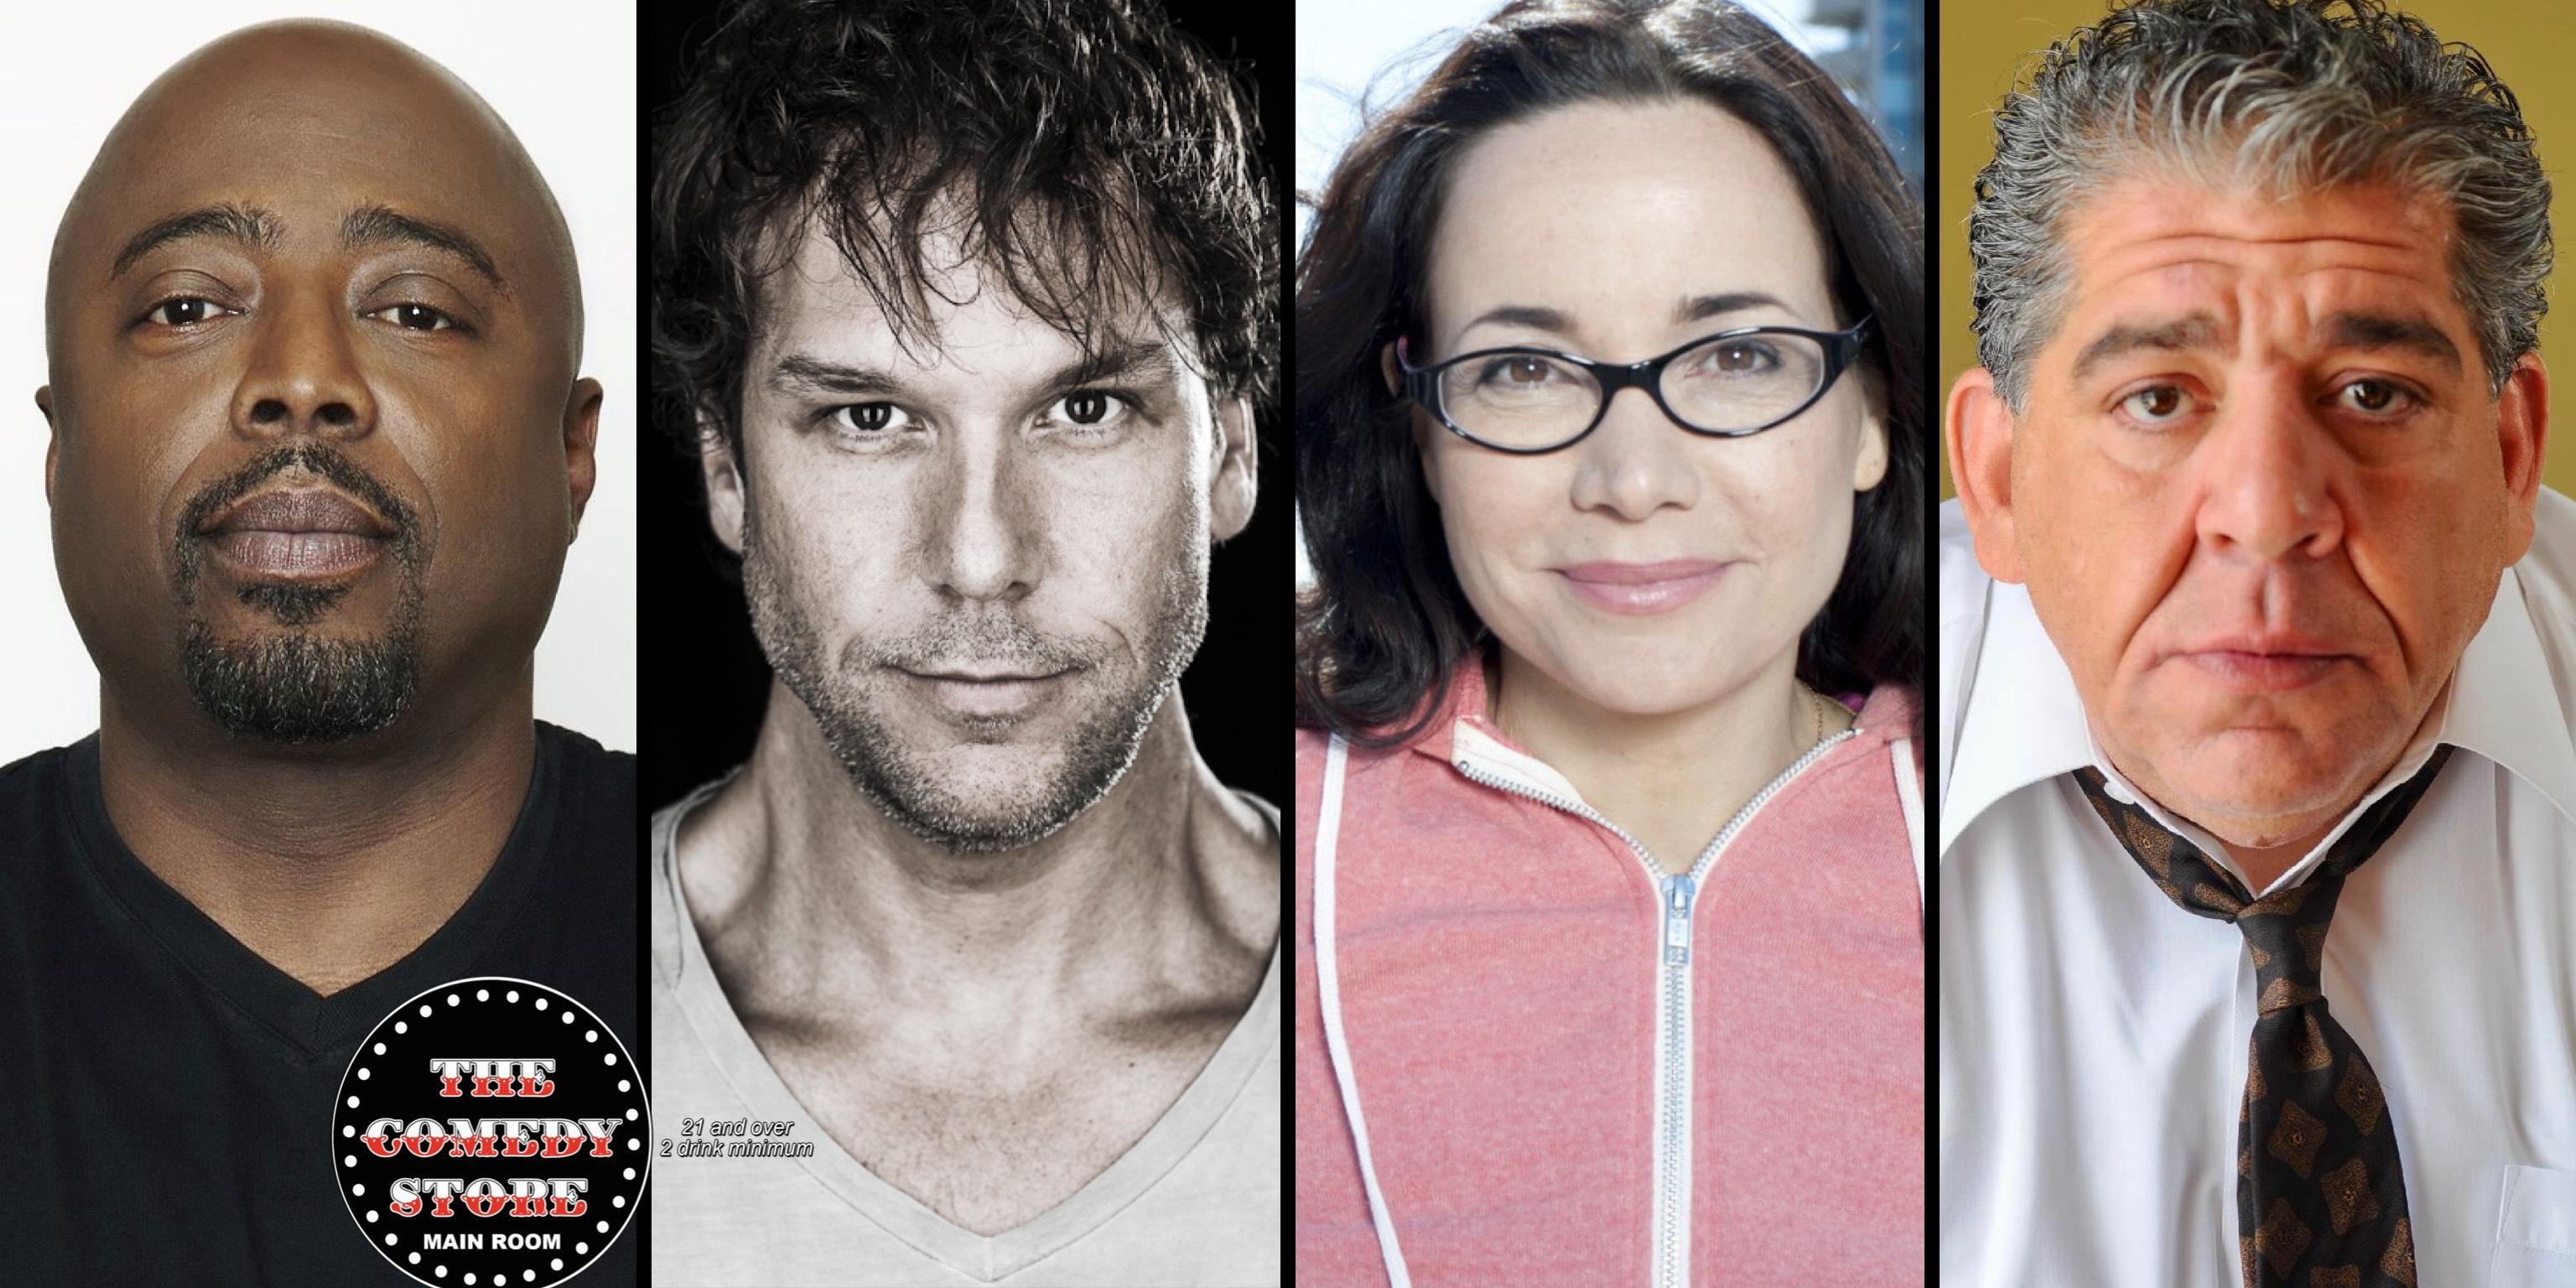 Janeane Garofalo, Dane Cook, Joey Coco Diaz, Donnell Rawlings and More!